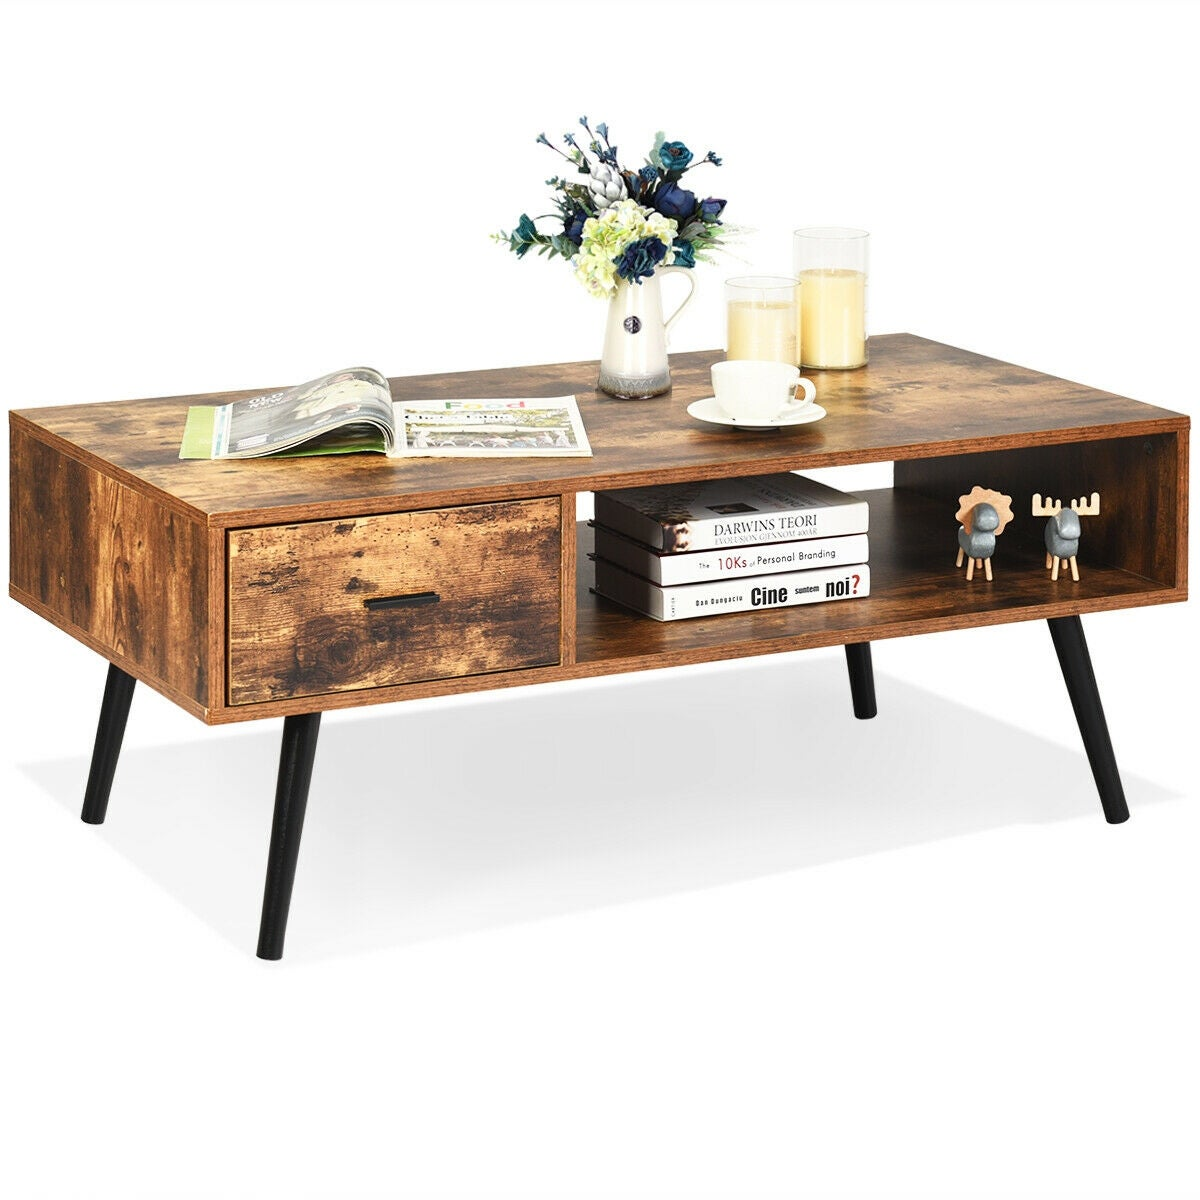 Gymax Retro Coffee Table Mid Century Modern Living Room Furniture See Details Overstock 31825655